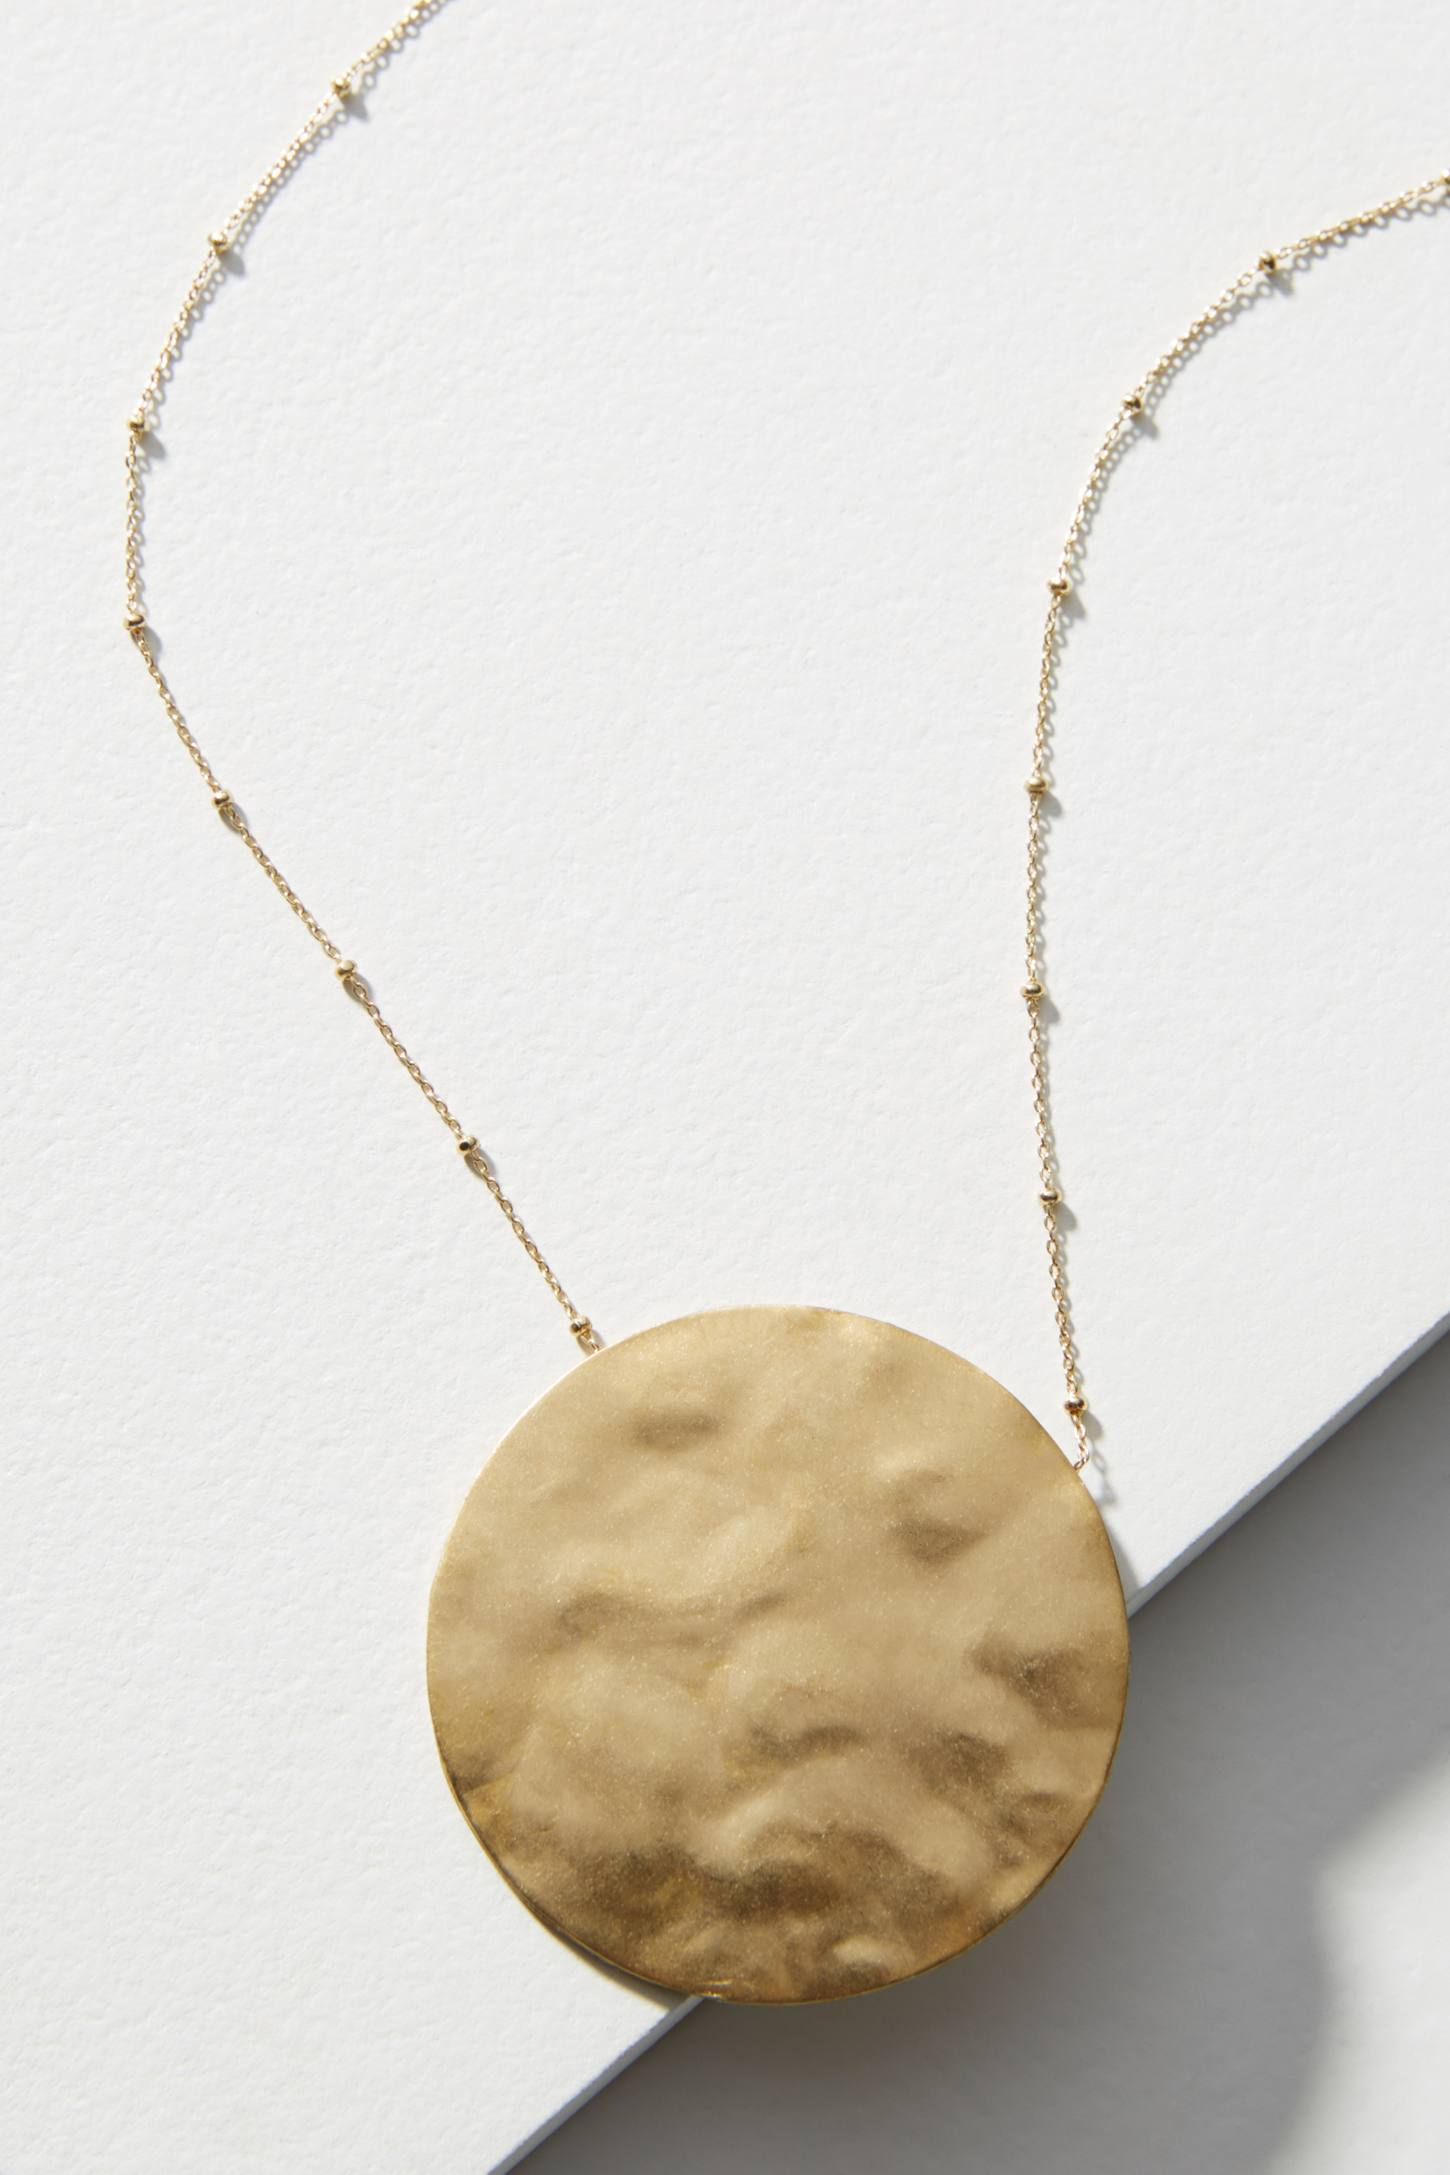 Anthropologie Antiqued Gold Pendant Necklace